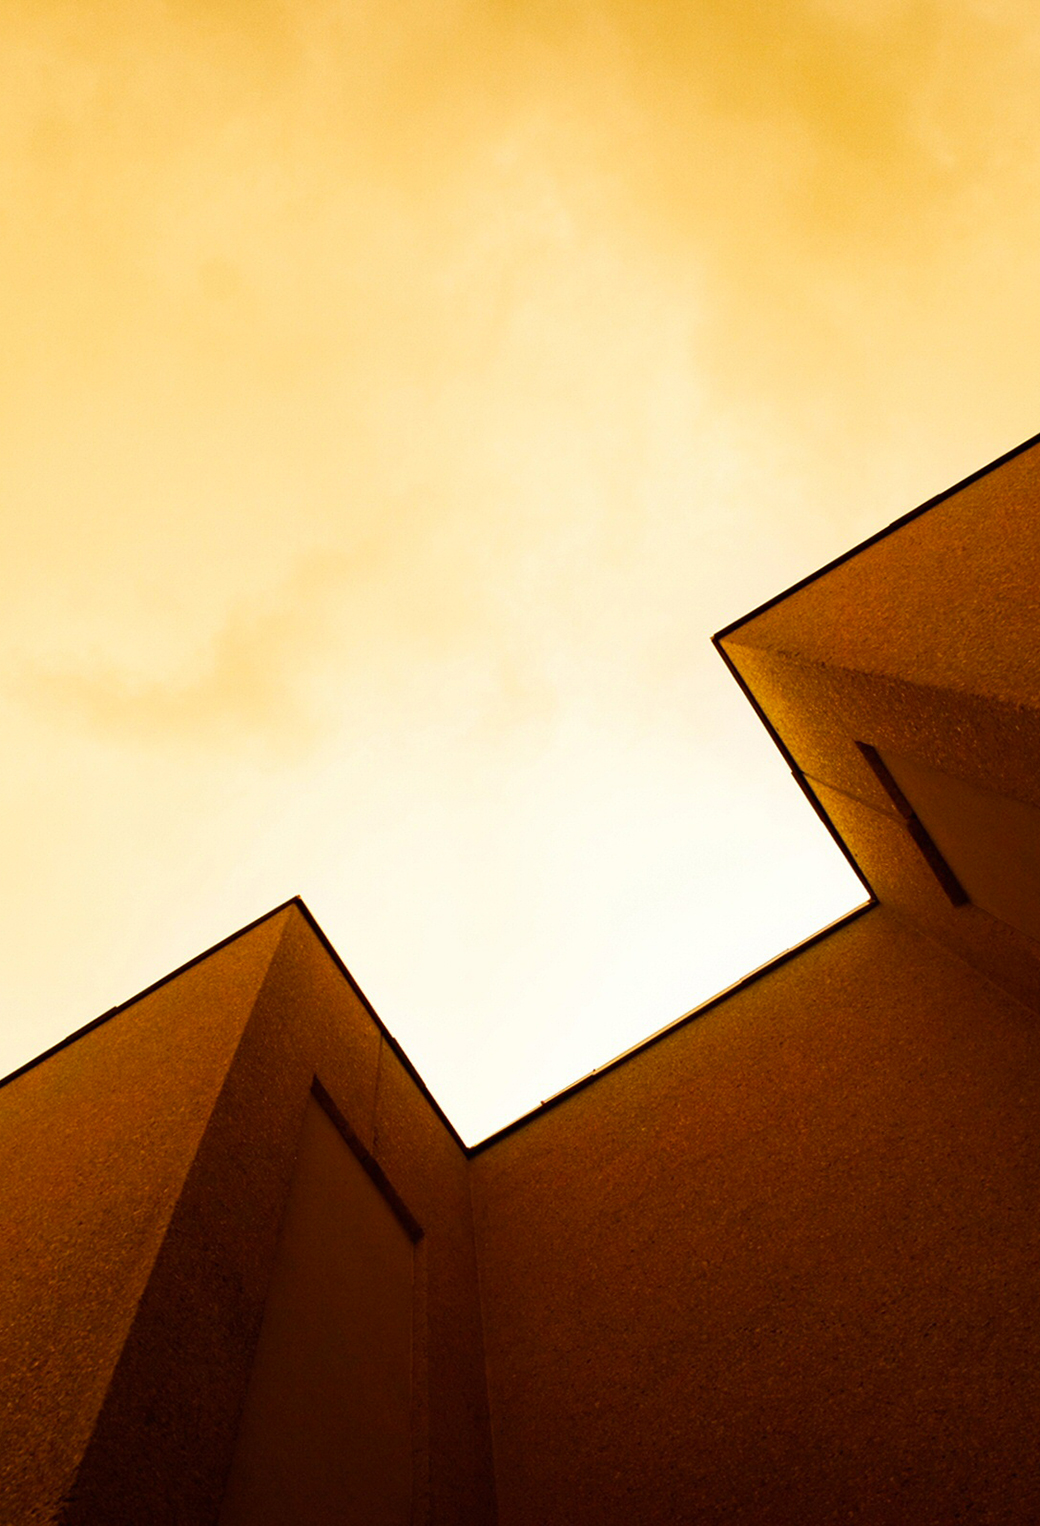 Orange Architecture 3Wallpapers iPhone Parallax Orange Architecture